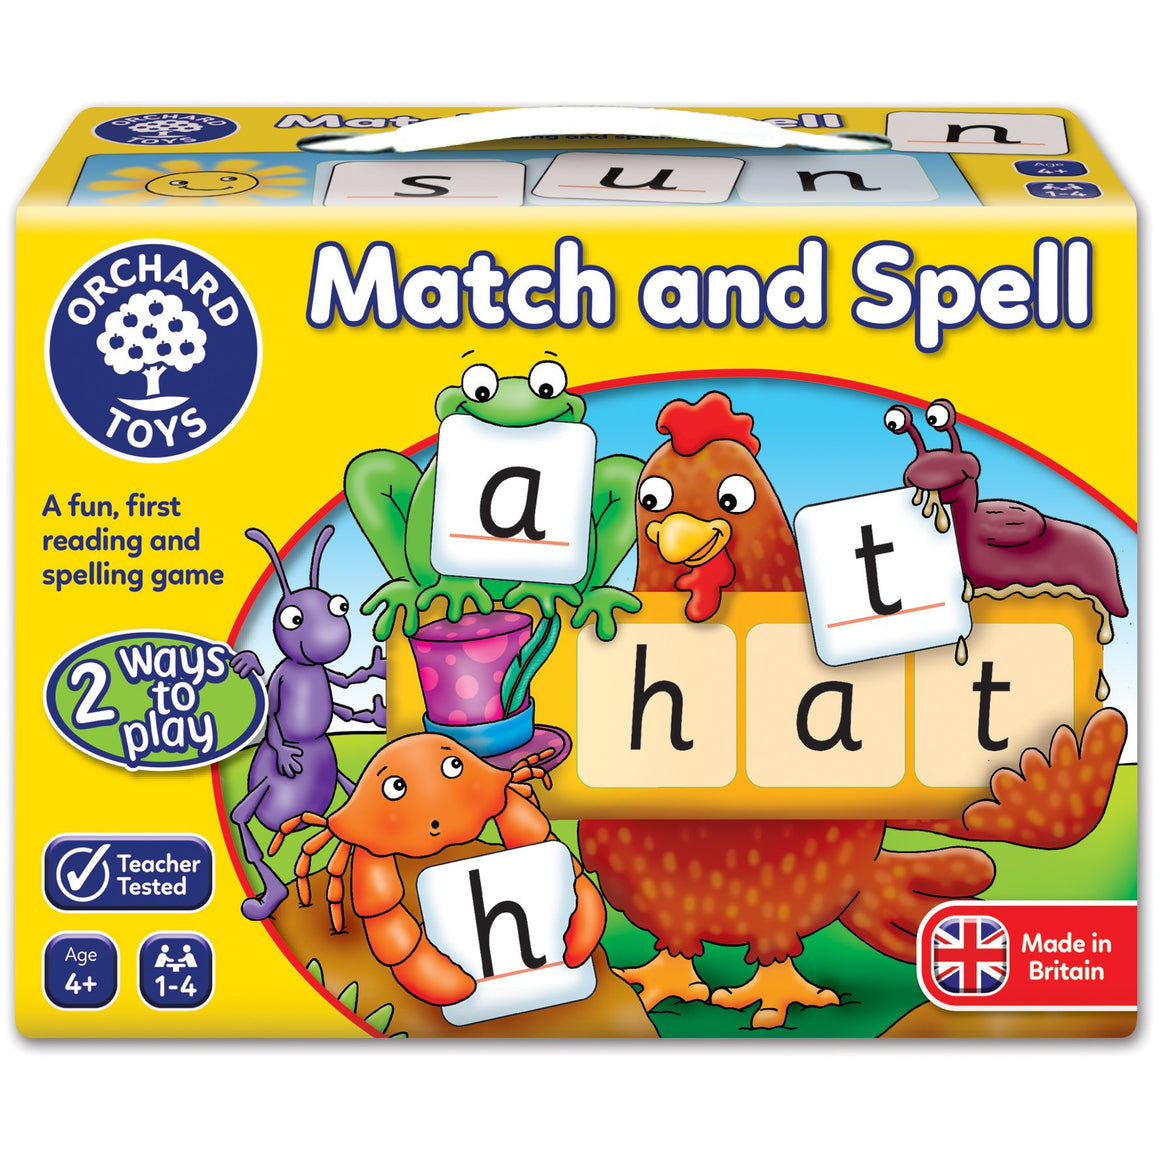 Match and Spell - The Tiny Toy Store